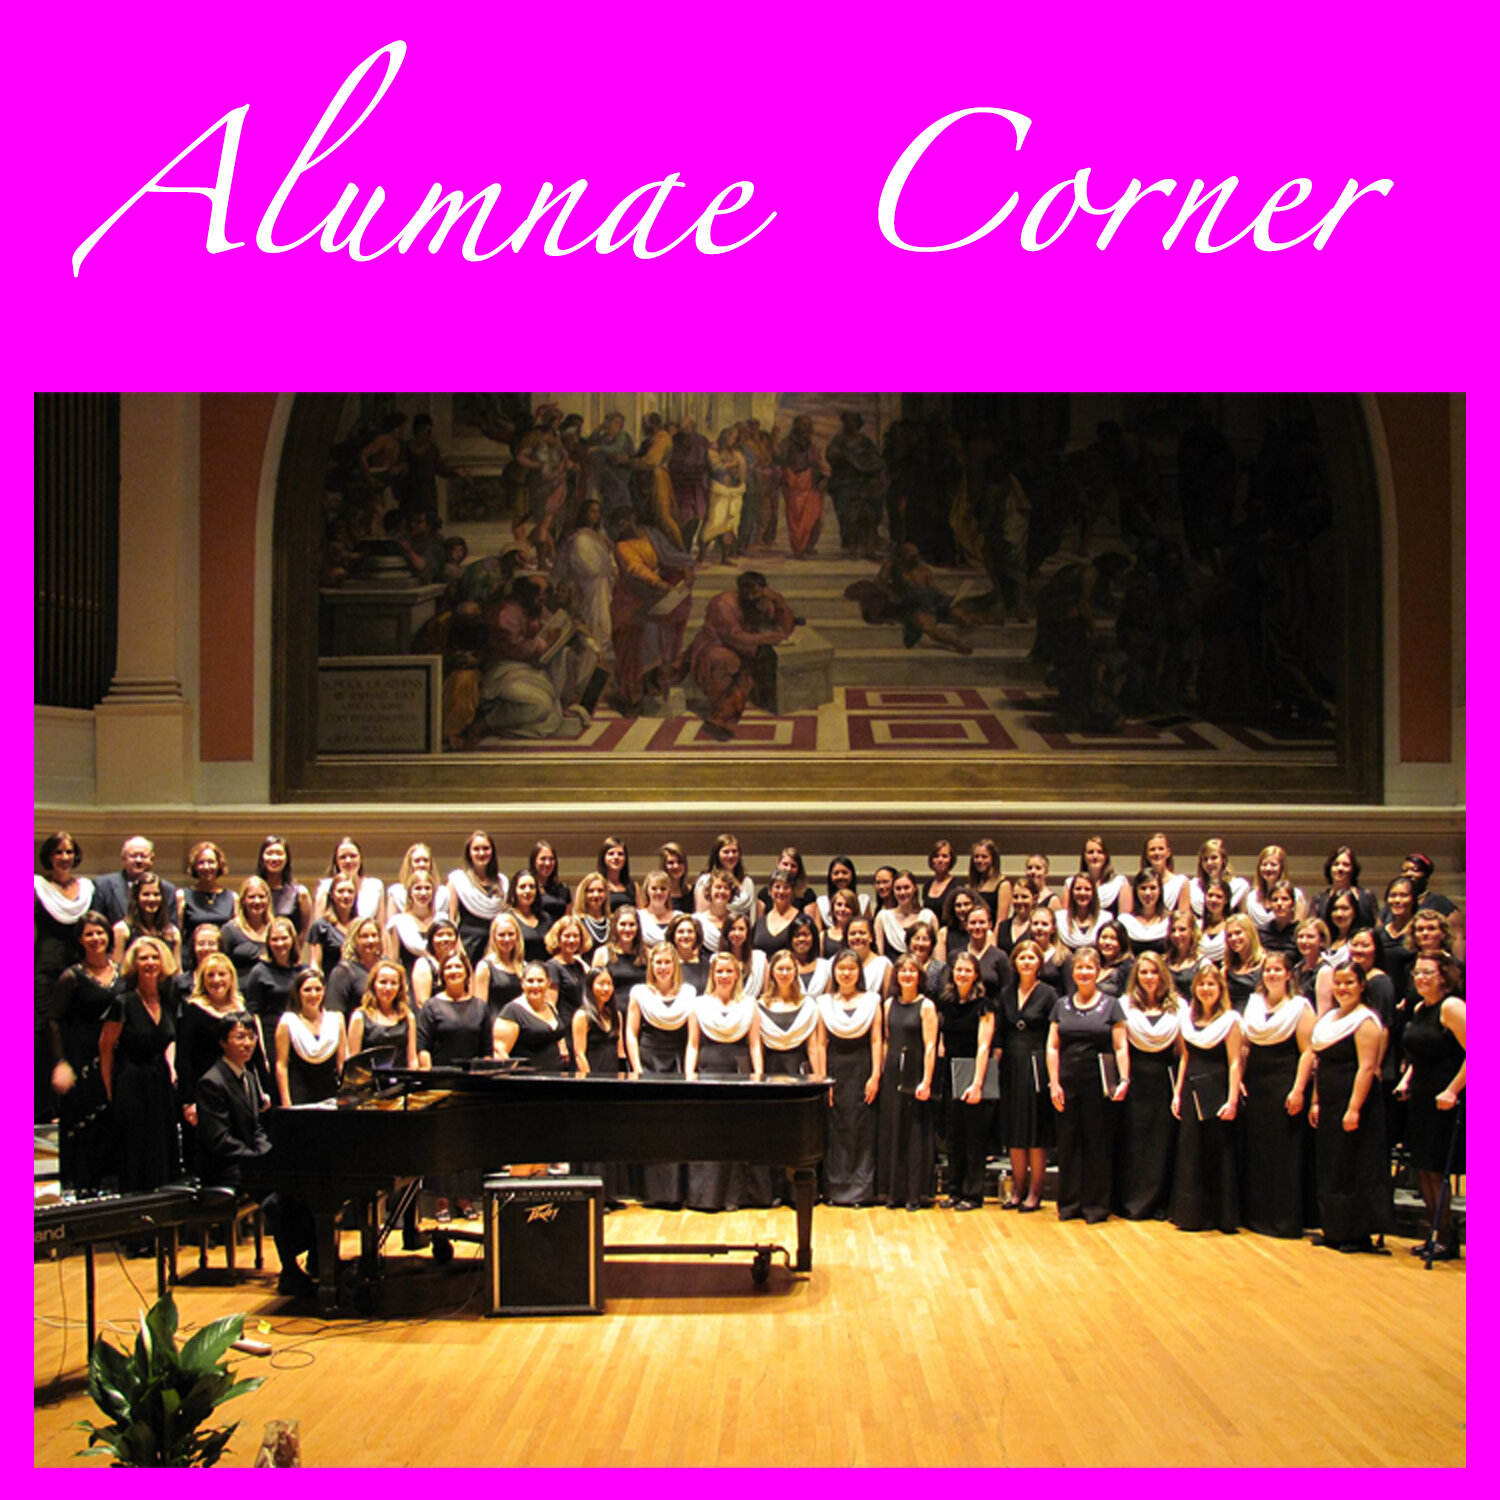 """The Virginia Women's Chorus in Old Cabell Hall with about 30 current members (when the picture was taken years ago) and 40 alumni all together. The photo is surrounded by a hot pink border with """"Alumnae Corner"""" in white text on the top border."""